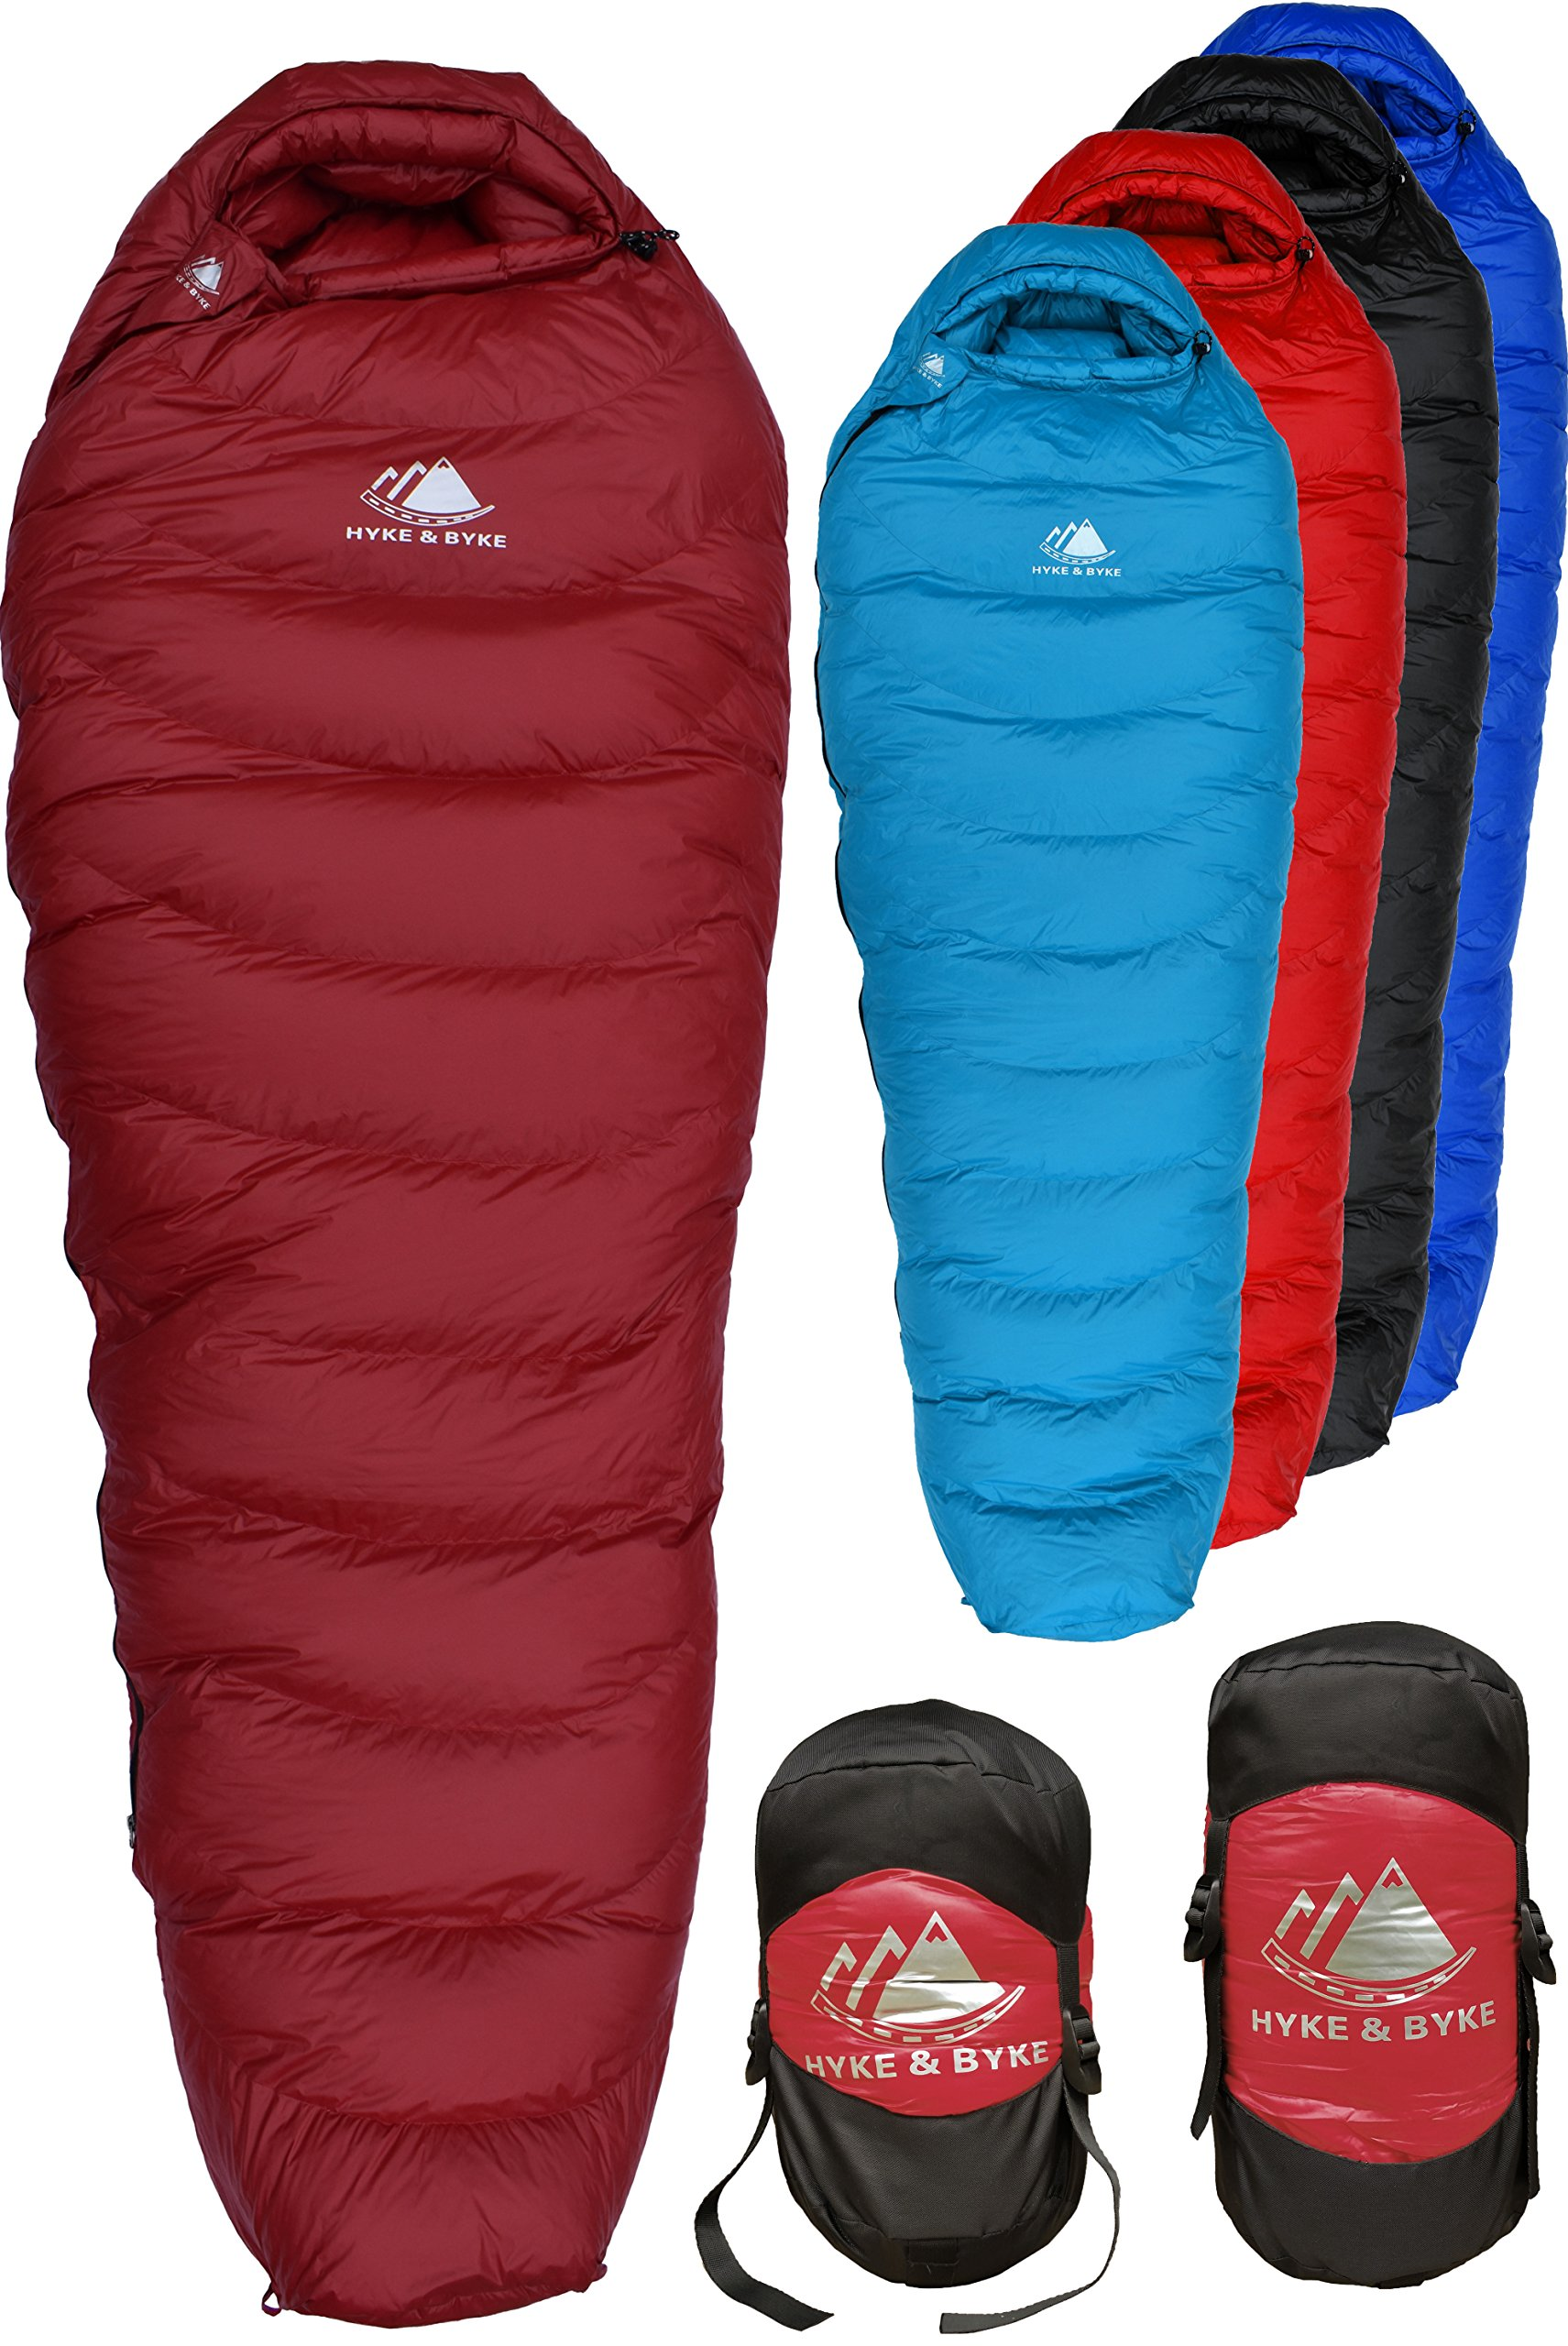 Hyke & Byke Snowmass 0 Degree F 650 Fill Power Hydrophobic Down Sleeping Bag with ClusterLoft Base - Ultra Lightweight 4 Season Men's and Women's Mummy Bag Designed for Cold Weather Backpacking by Hyke & Byke